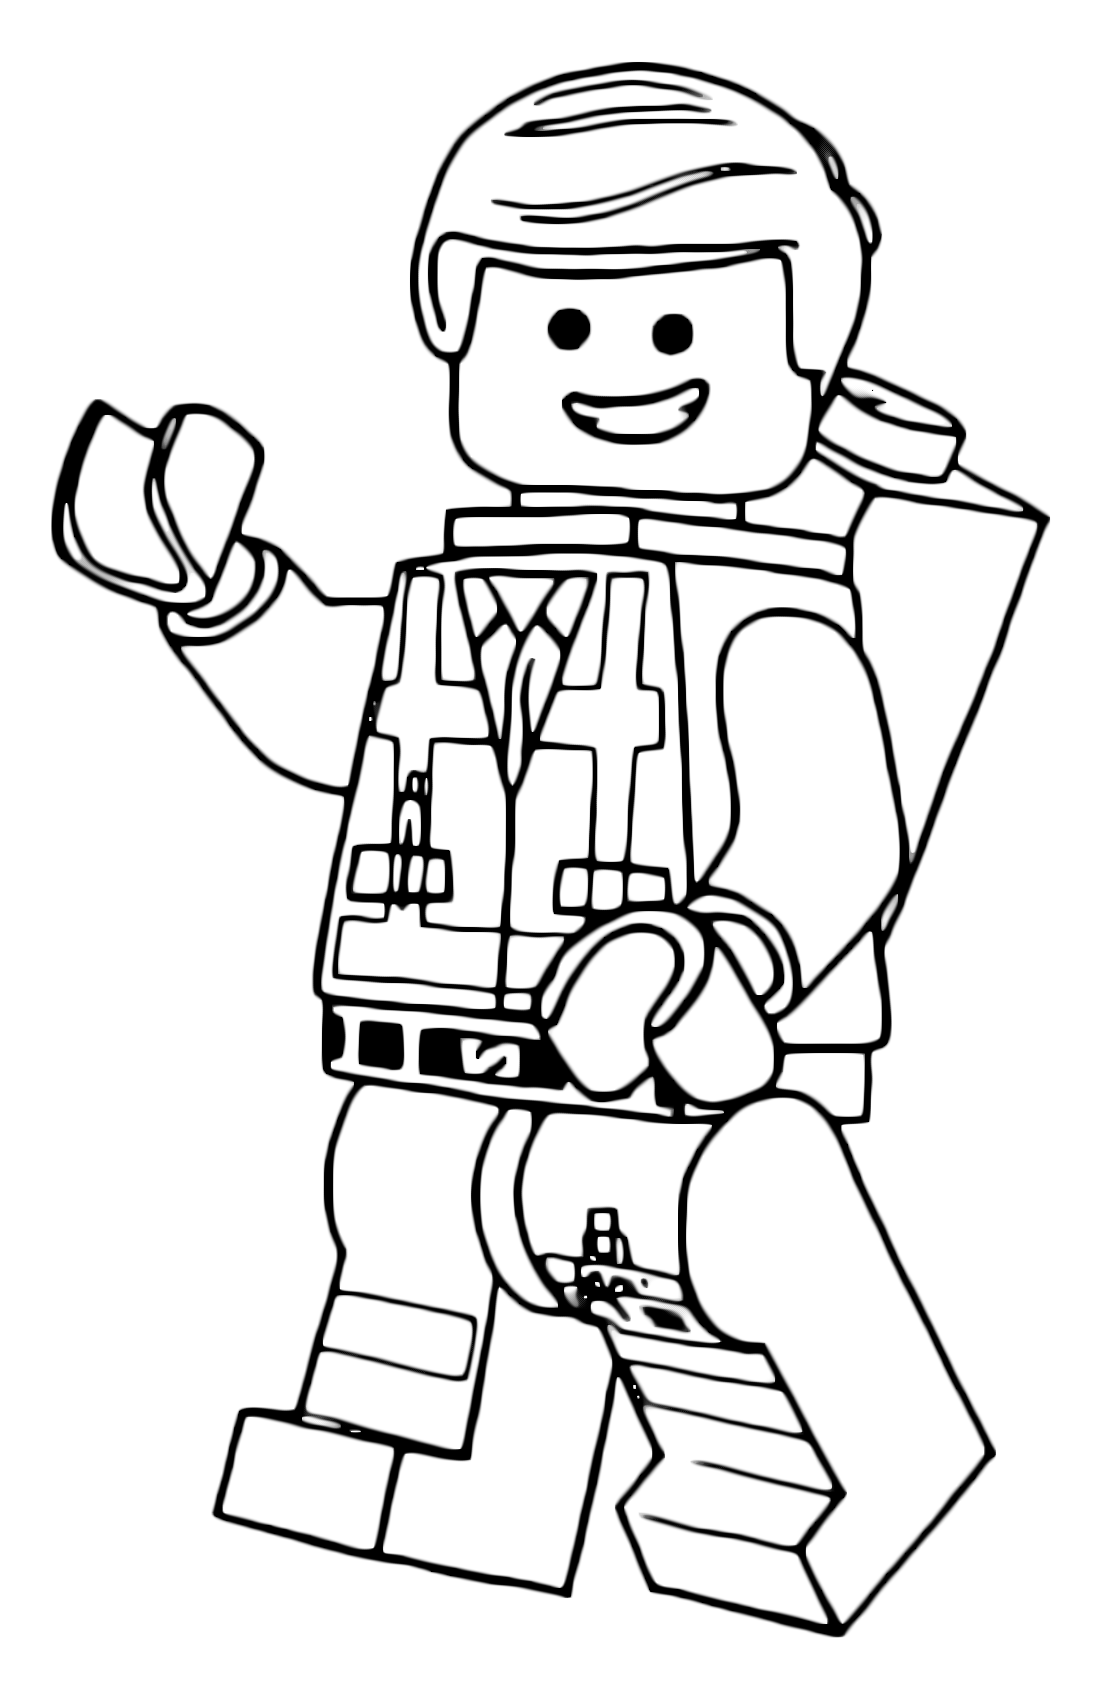 lego movie 2 coloring pages printable free the lego movie 2 coloring pages printable lego movie 2 printable pages coloring